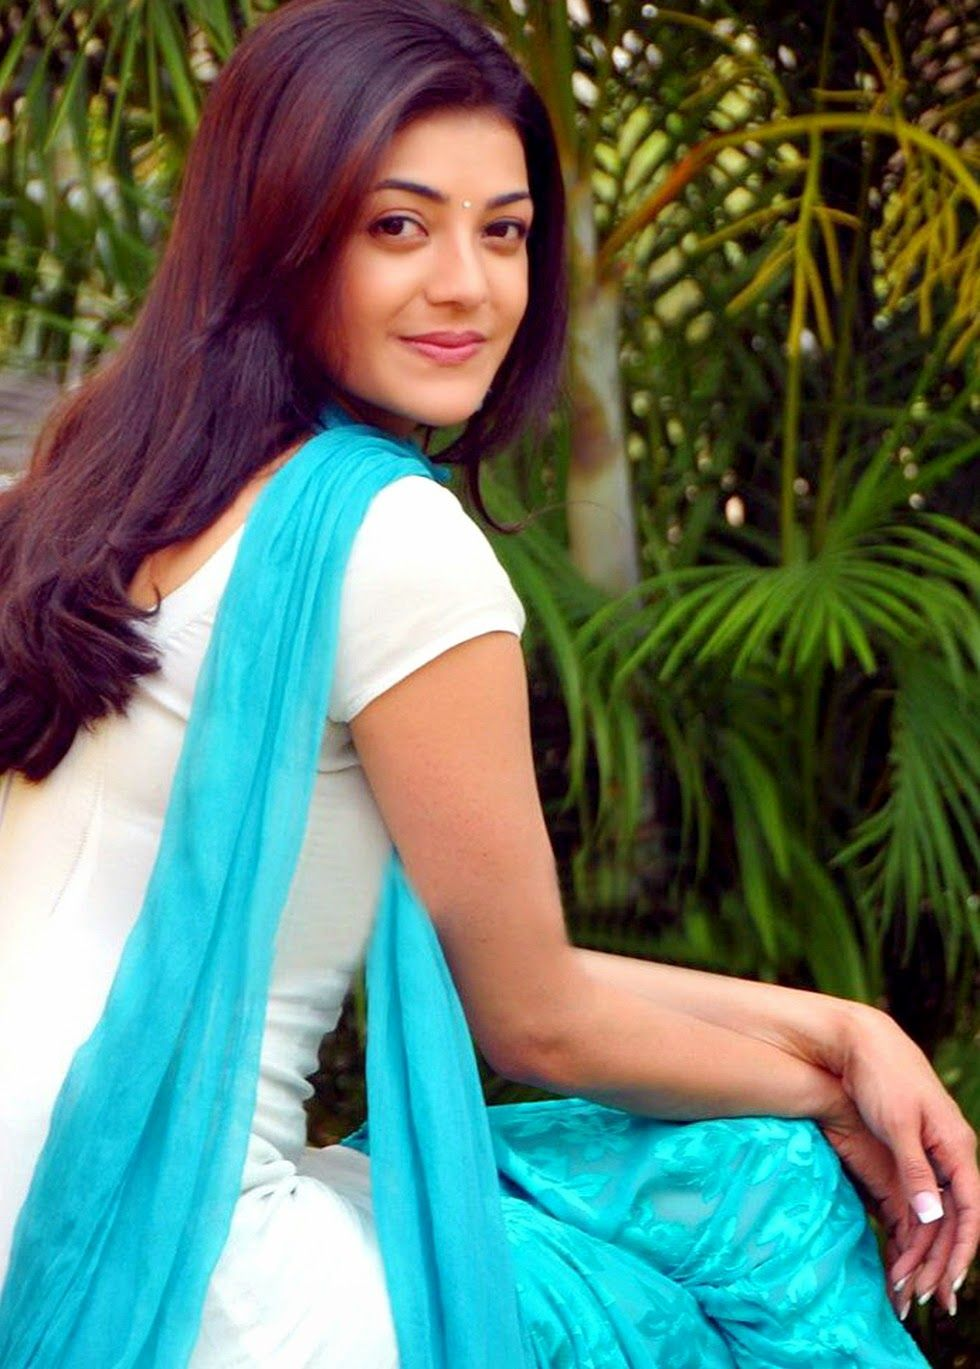 kajal agarwal wallpapers free download image wallpapers | kajal